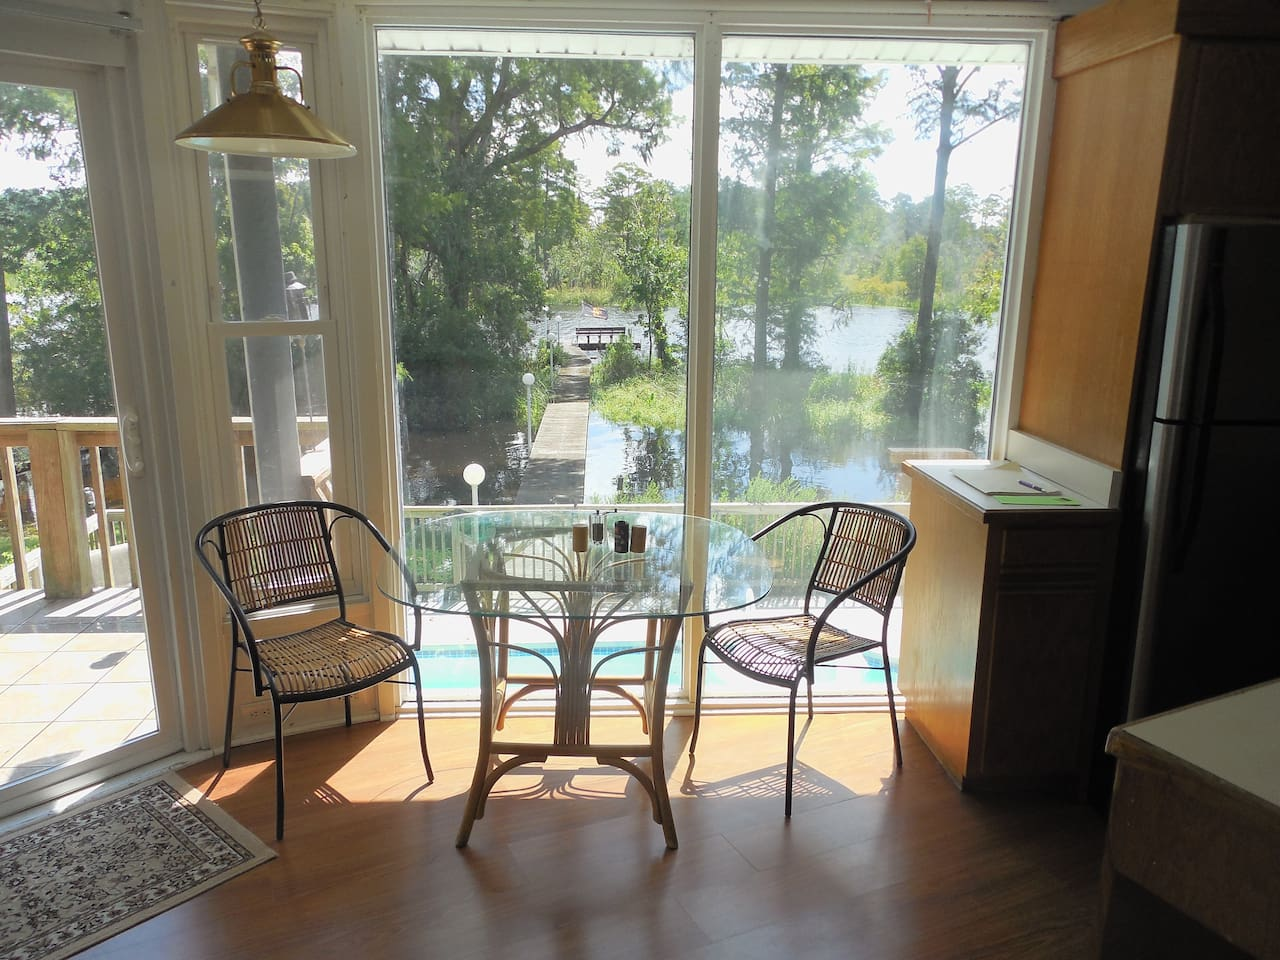 View of the Trent River from the house.